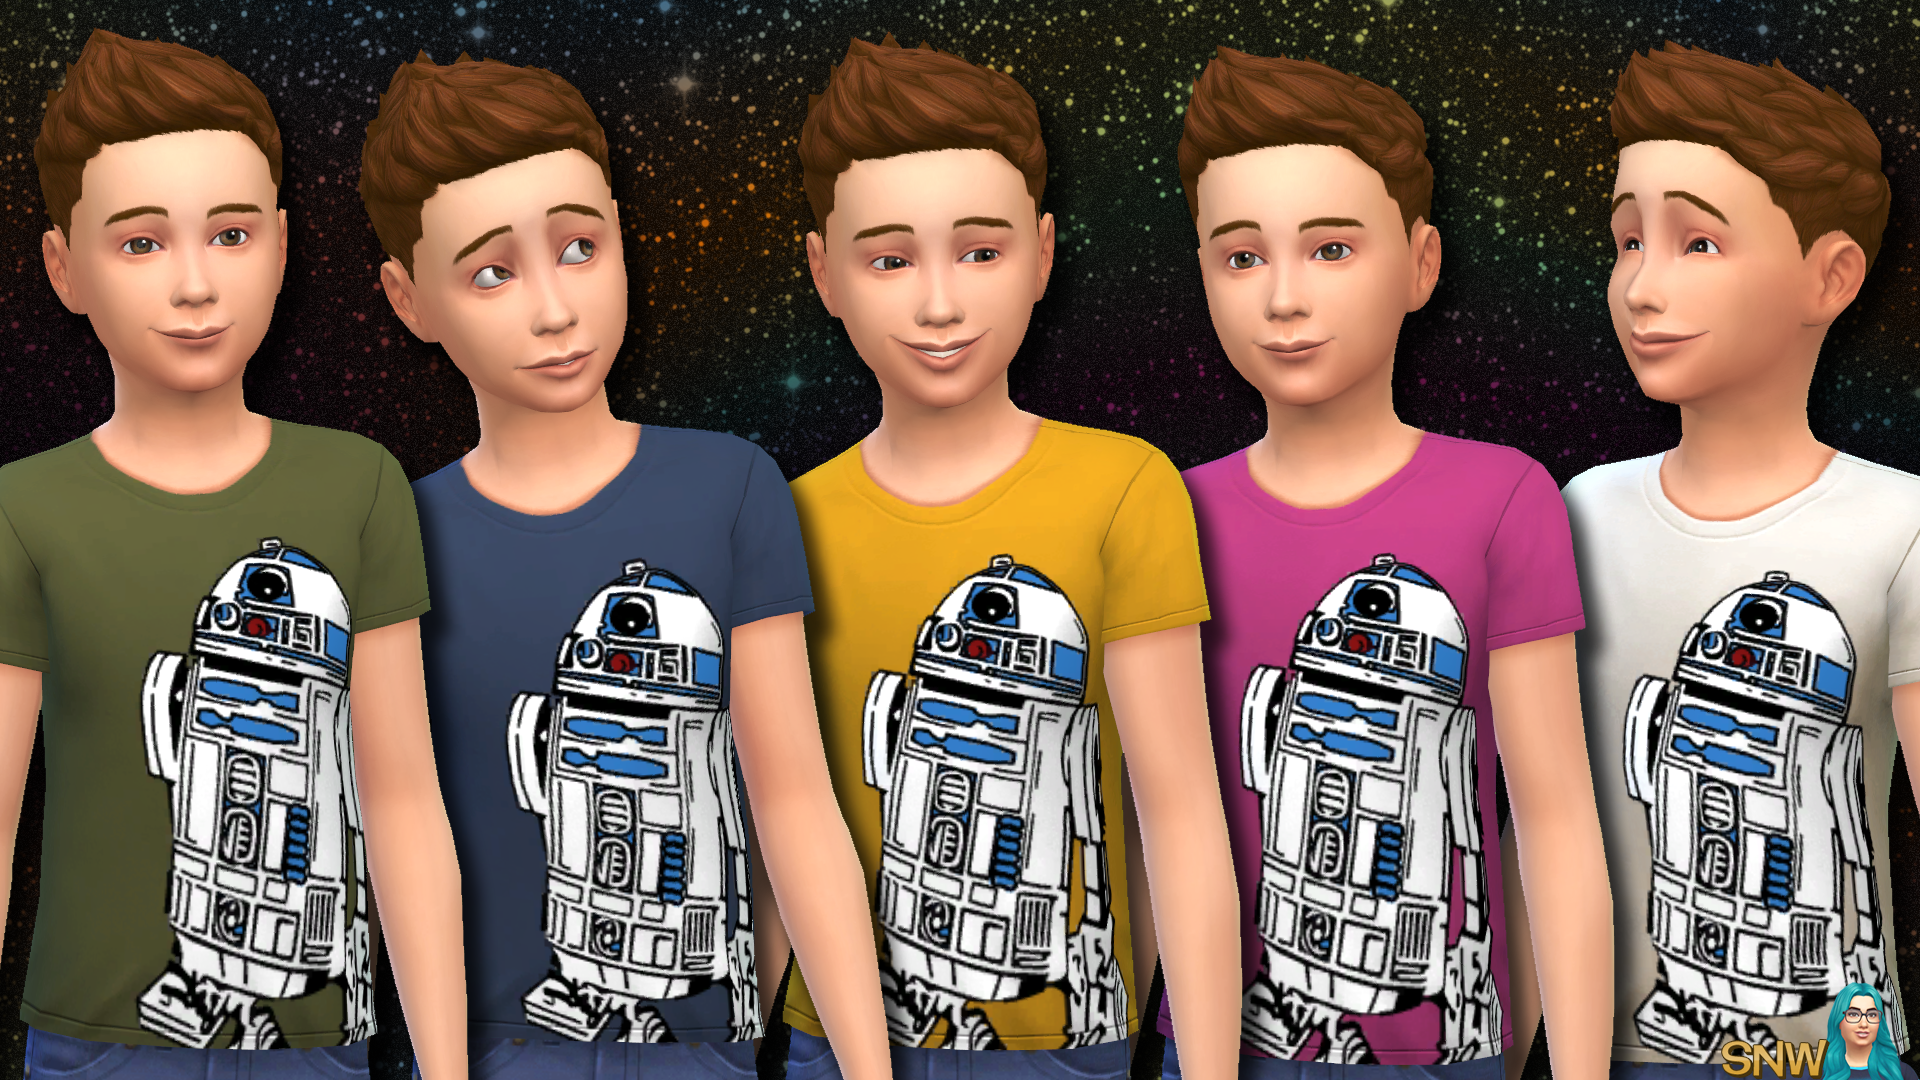 Star Wars R2-D2 Shirts for Kids